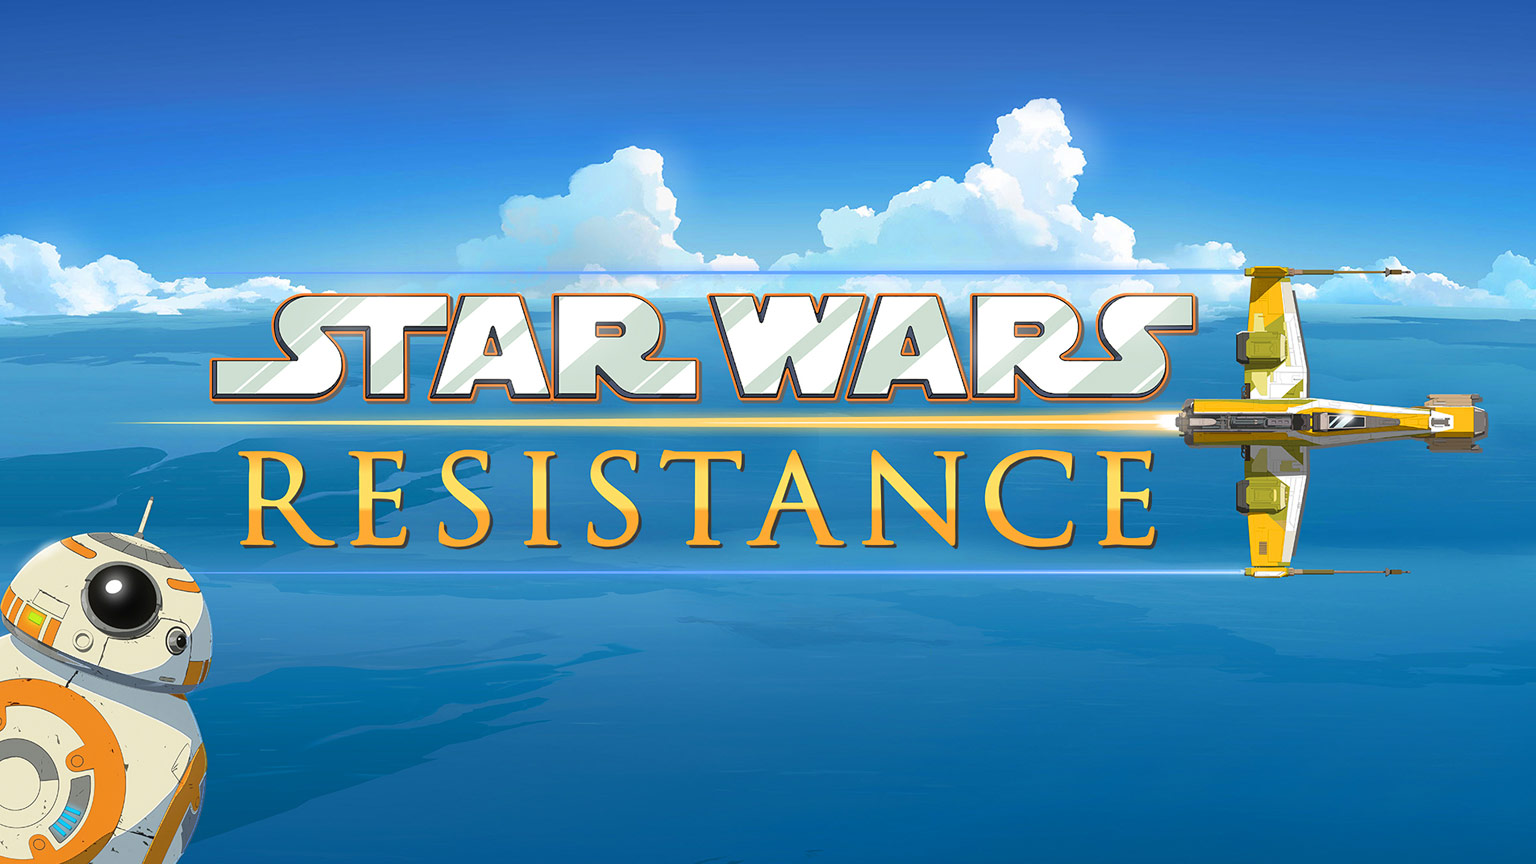 Star Wars Resistance Cancelled?